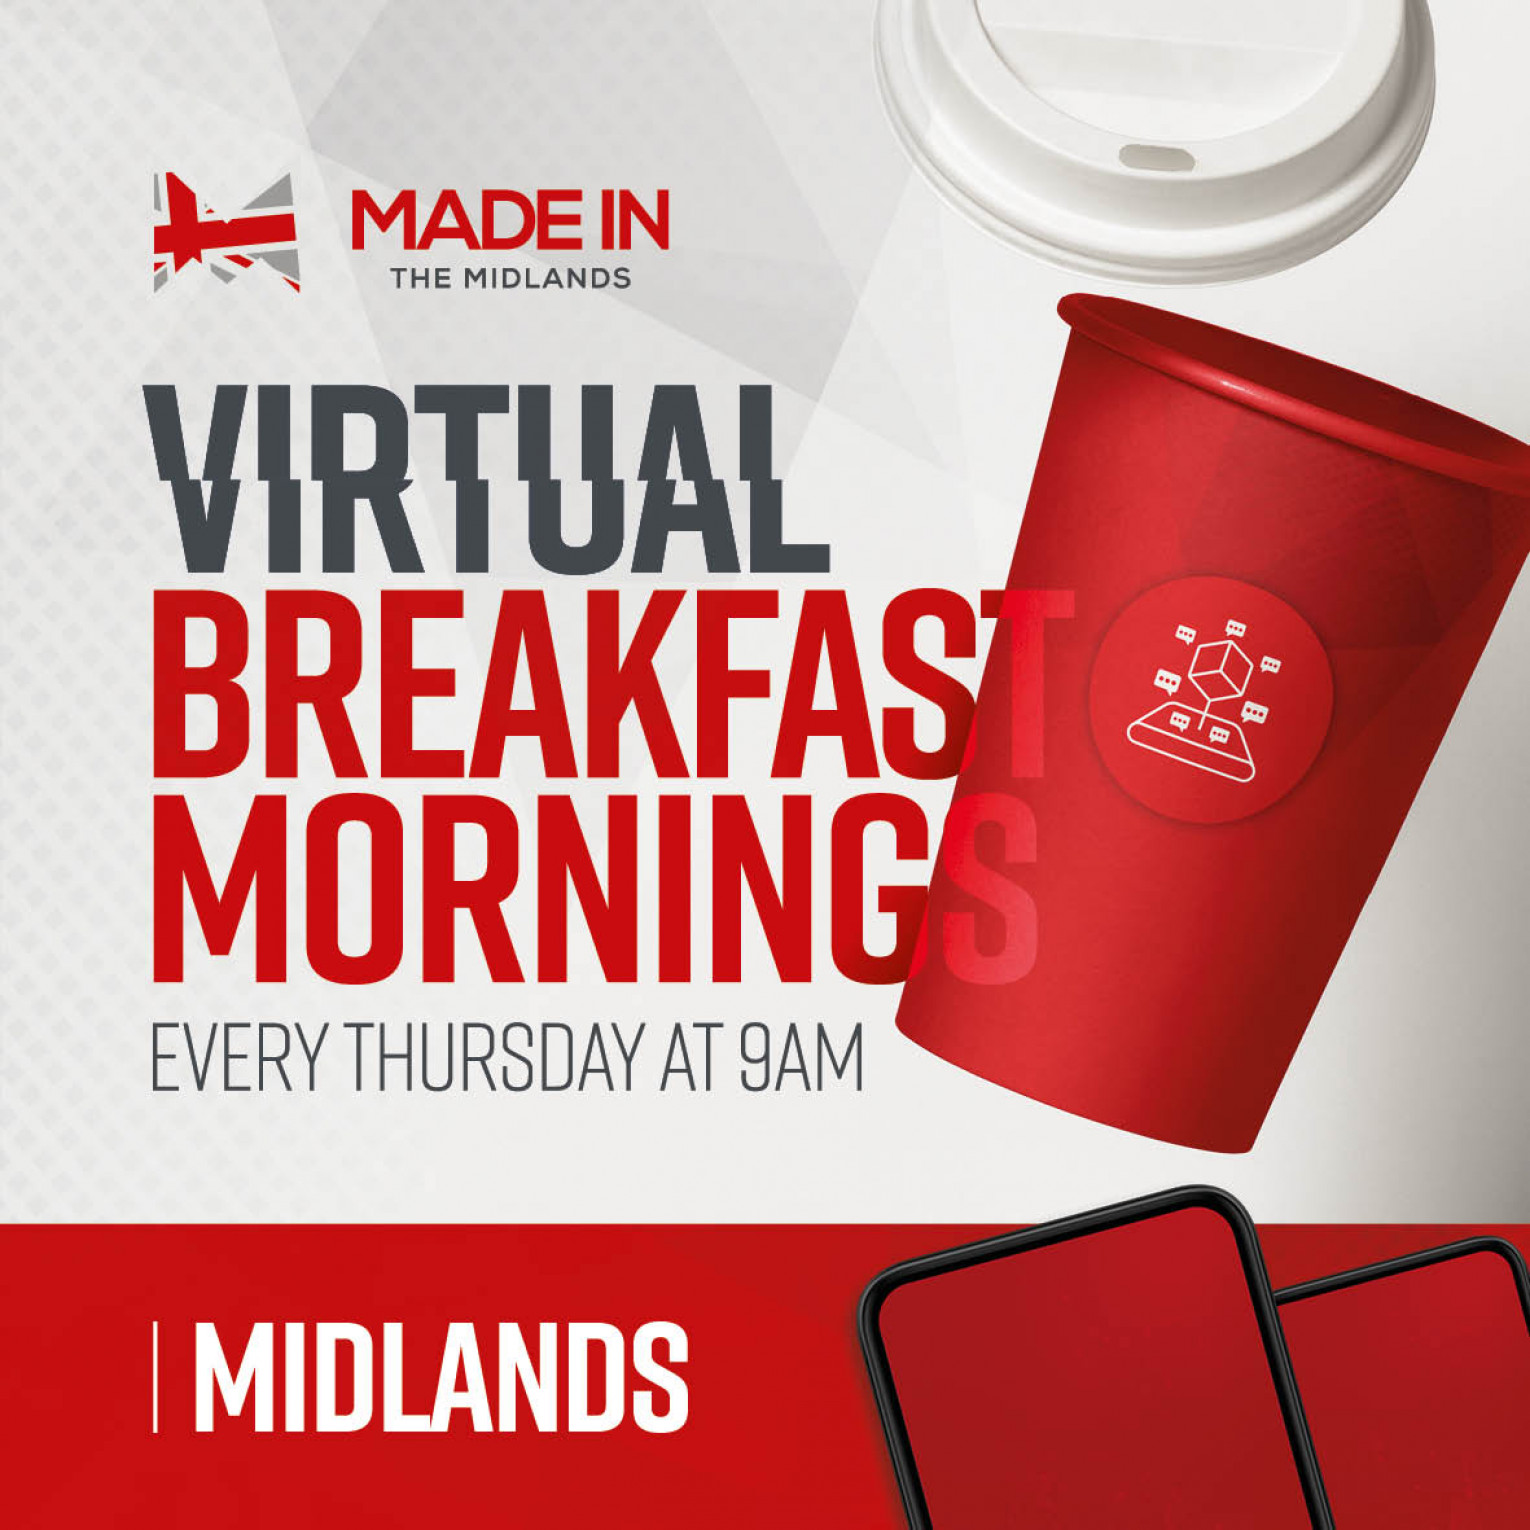 Made in the Midlands Virtual Breakfast with Wrekin Sheetmetal